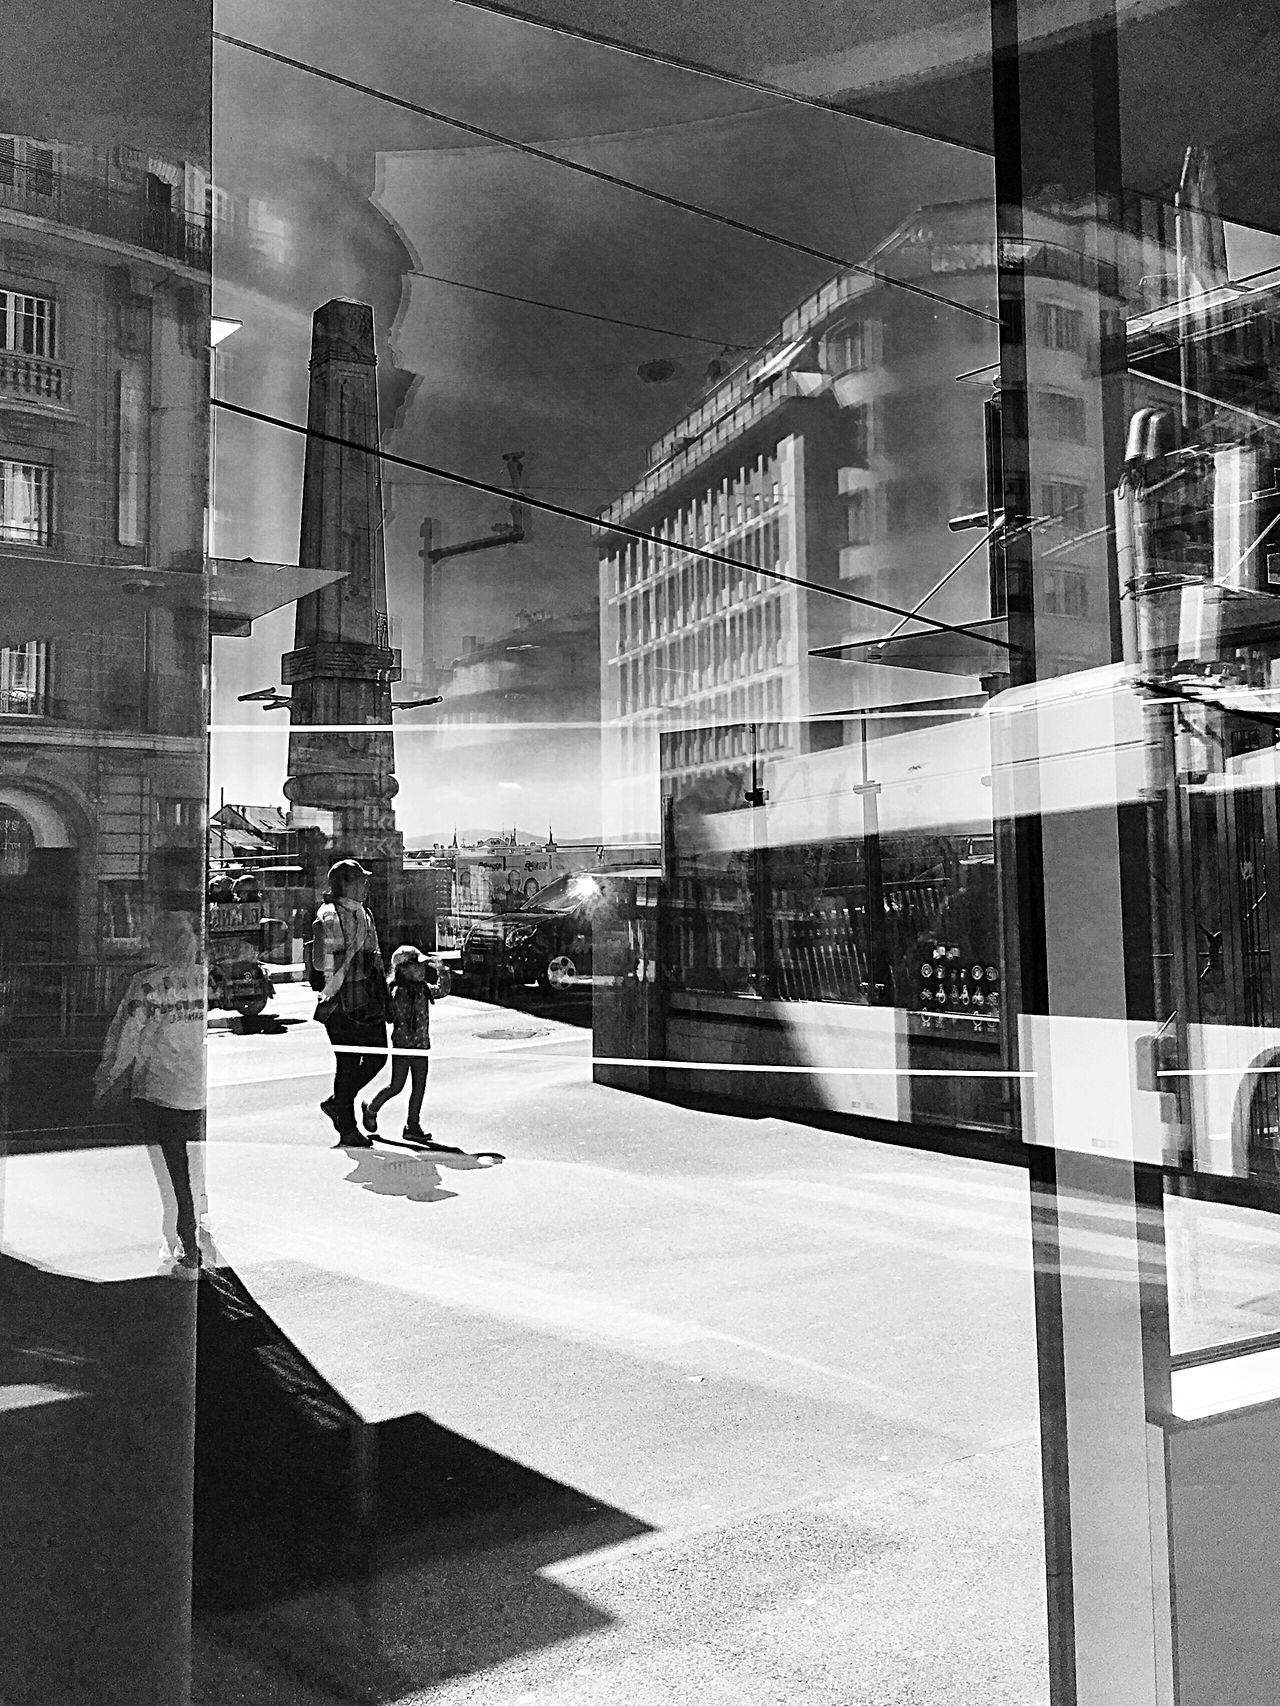 City Built Structure Reflection Street Walking Outdoors Day Stonegraphix People Black And White Bianco E Nero Black & White Blanc Et Noir Agitation Stress Building Exterior Right And Left Light And Shadow Luminosity Transportation Architecture EyeEmNewHere Art Is Everywhere Break The Mold Art Is Everywhere The Street Photographer The Street Photographer - 2017 EyeEm Awards Live For The Story